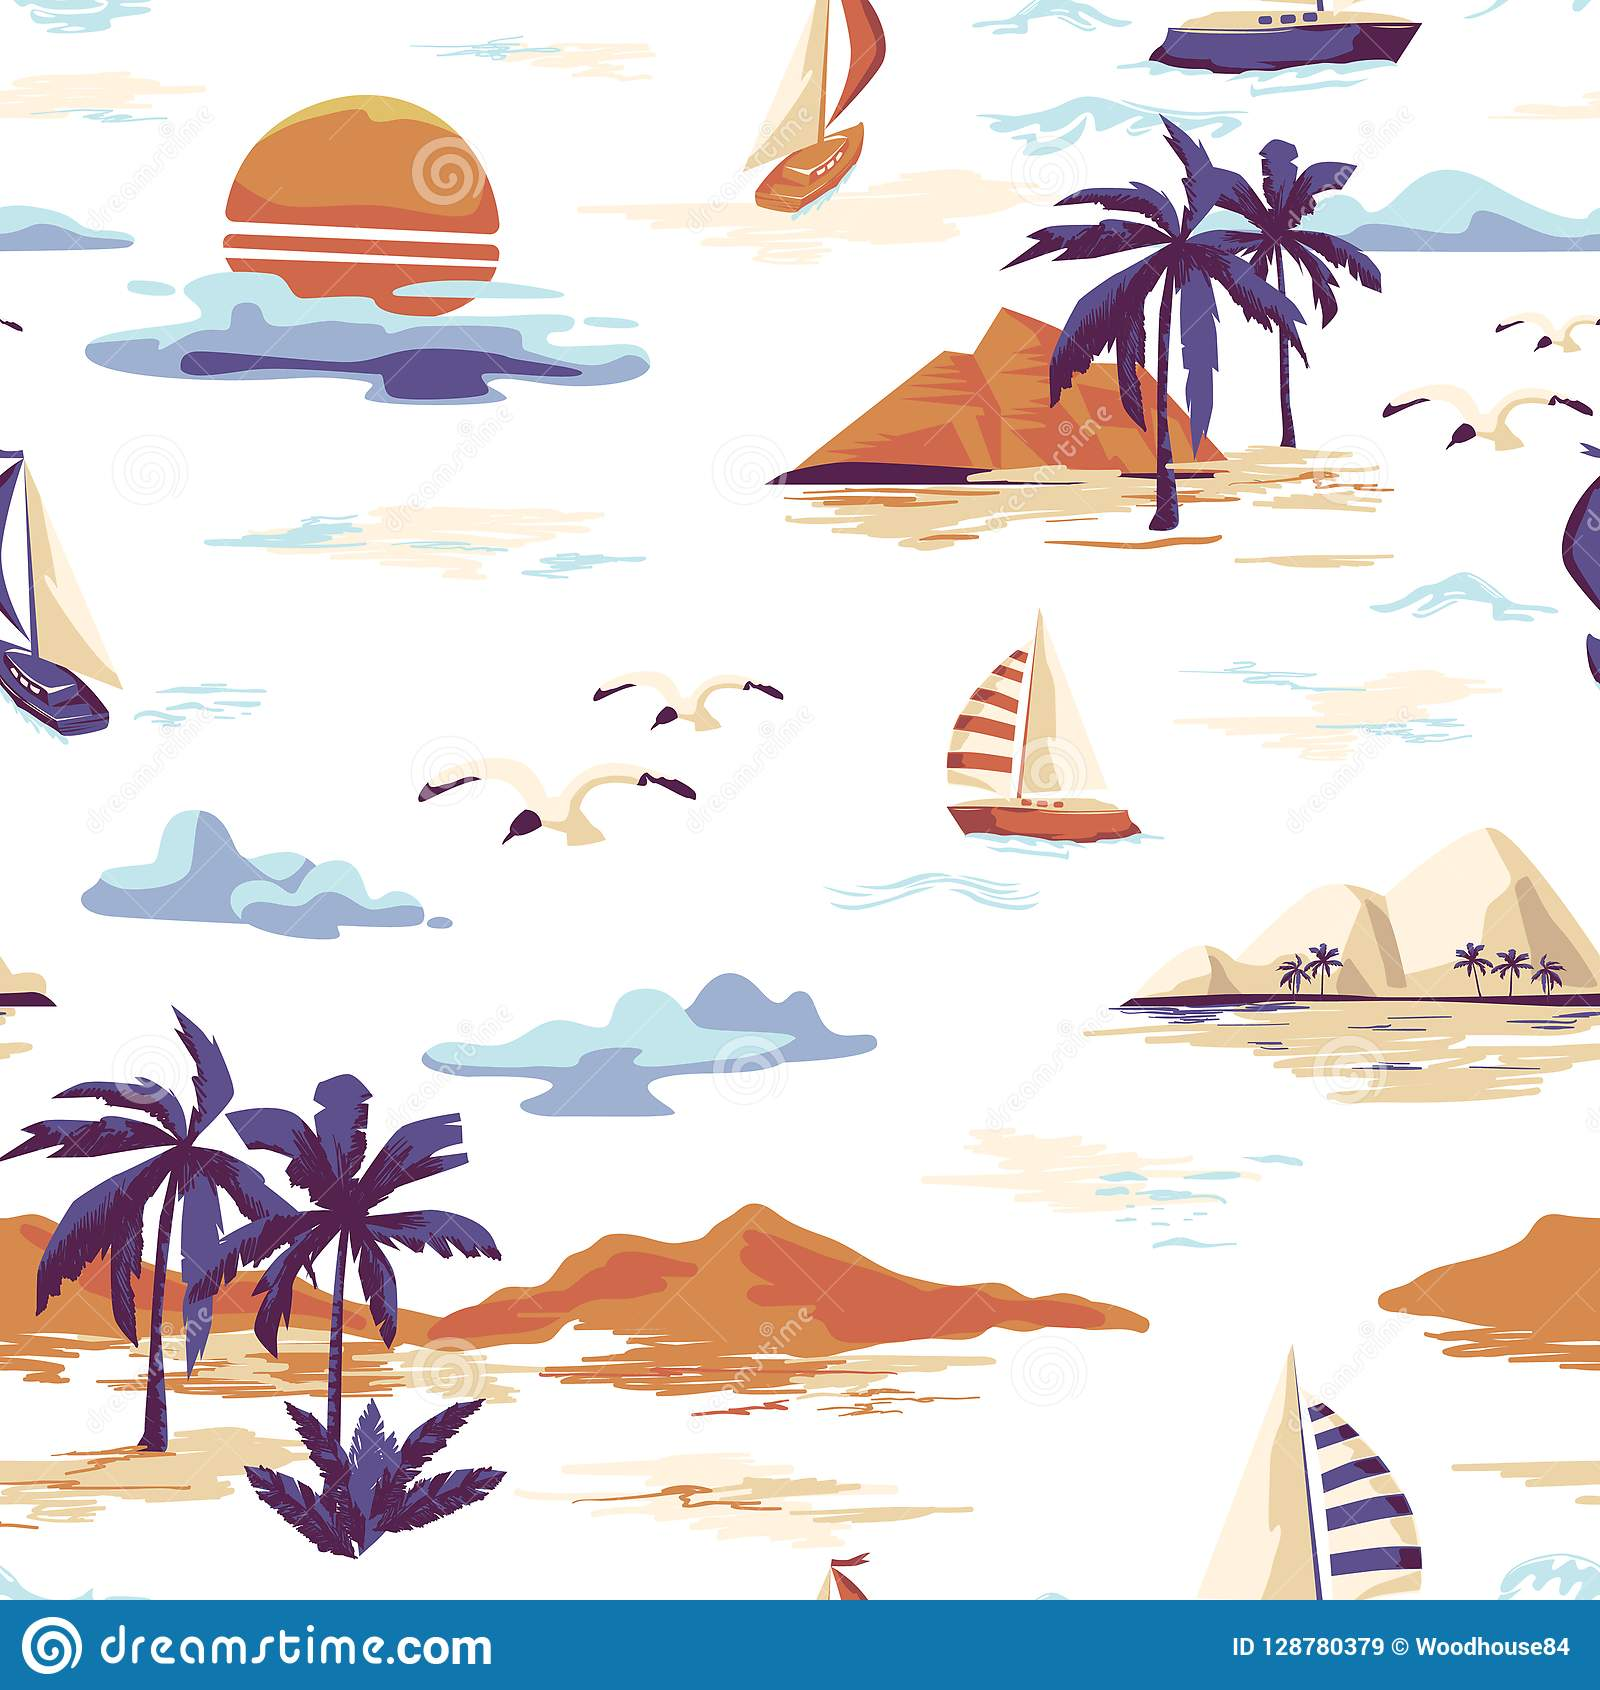 Vintage seamless island pattern Landscape with palm trees, yacht, beach and ocean hand drawn style